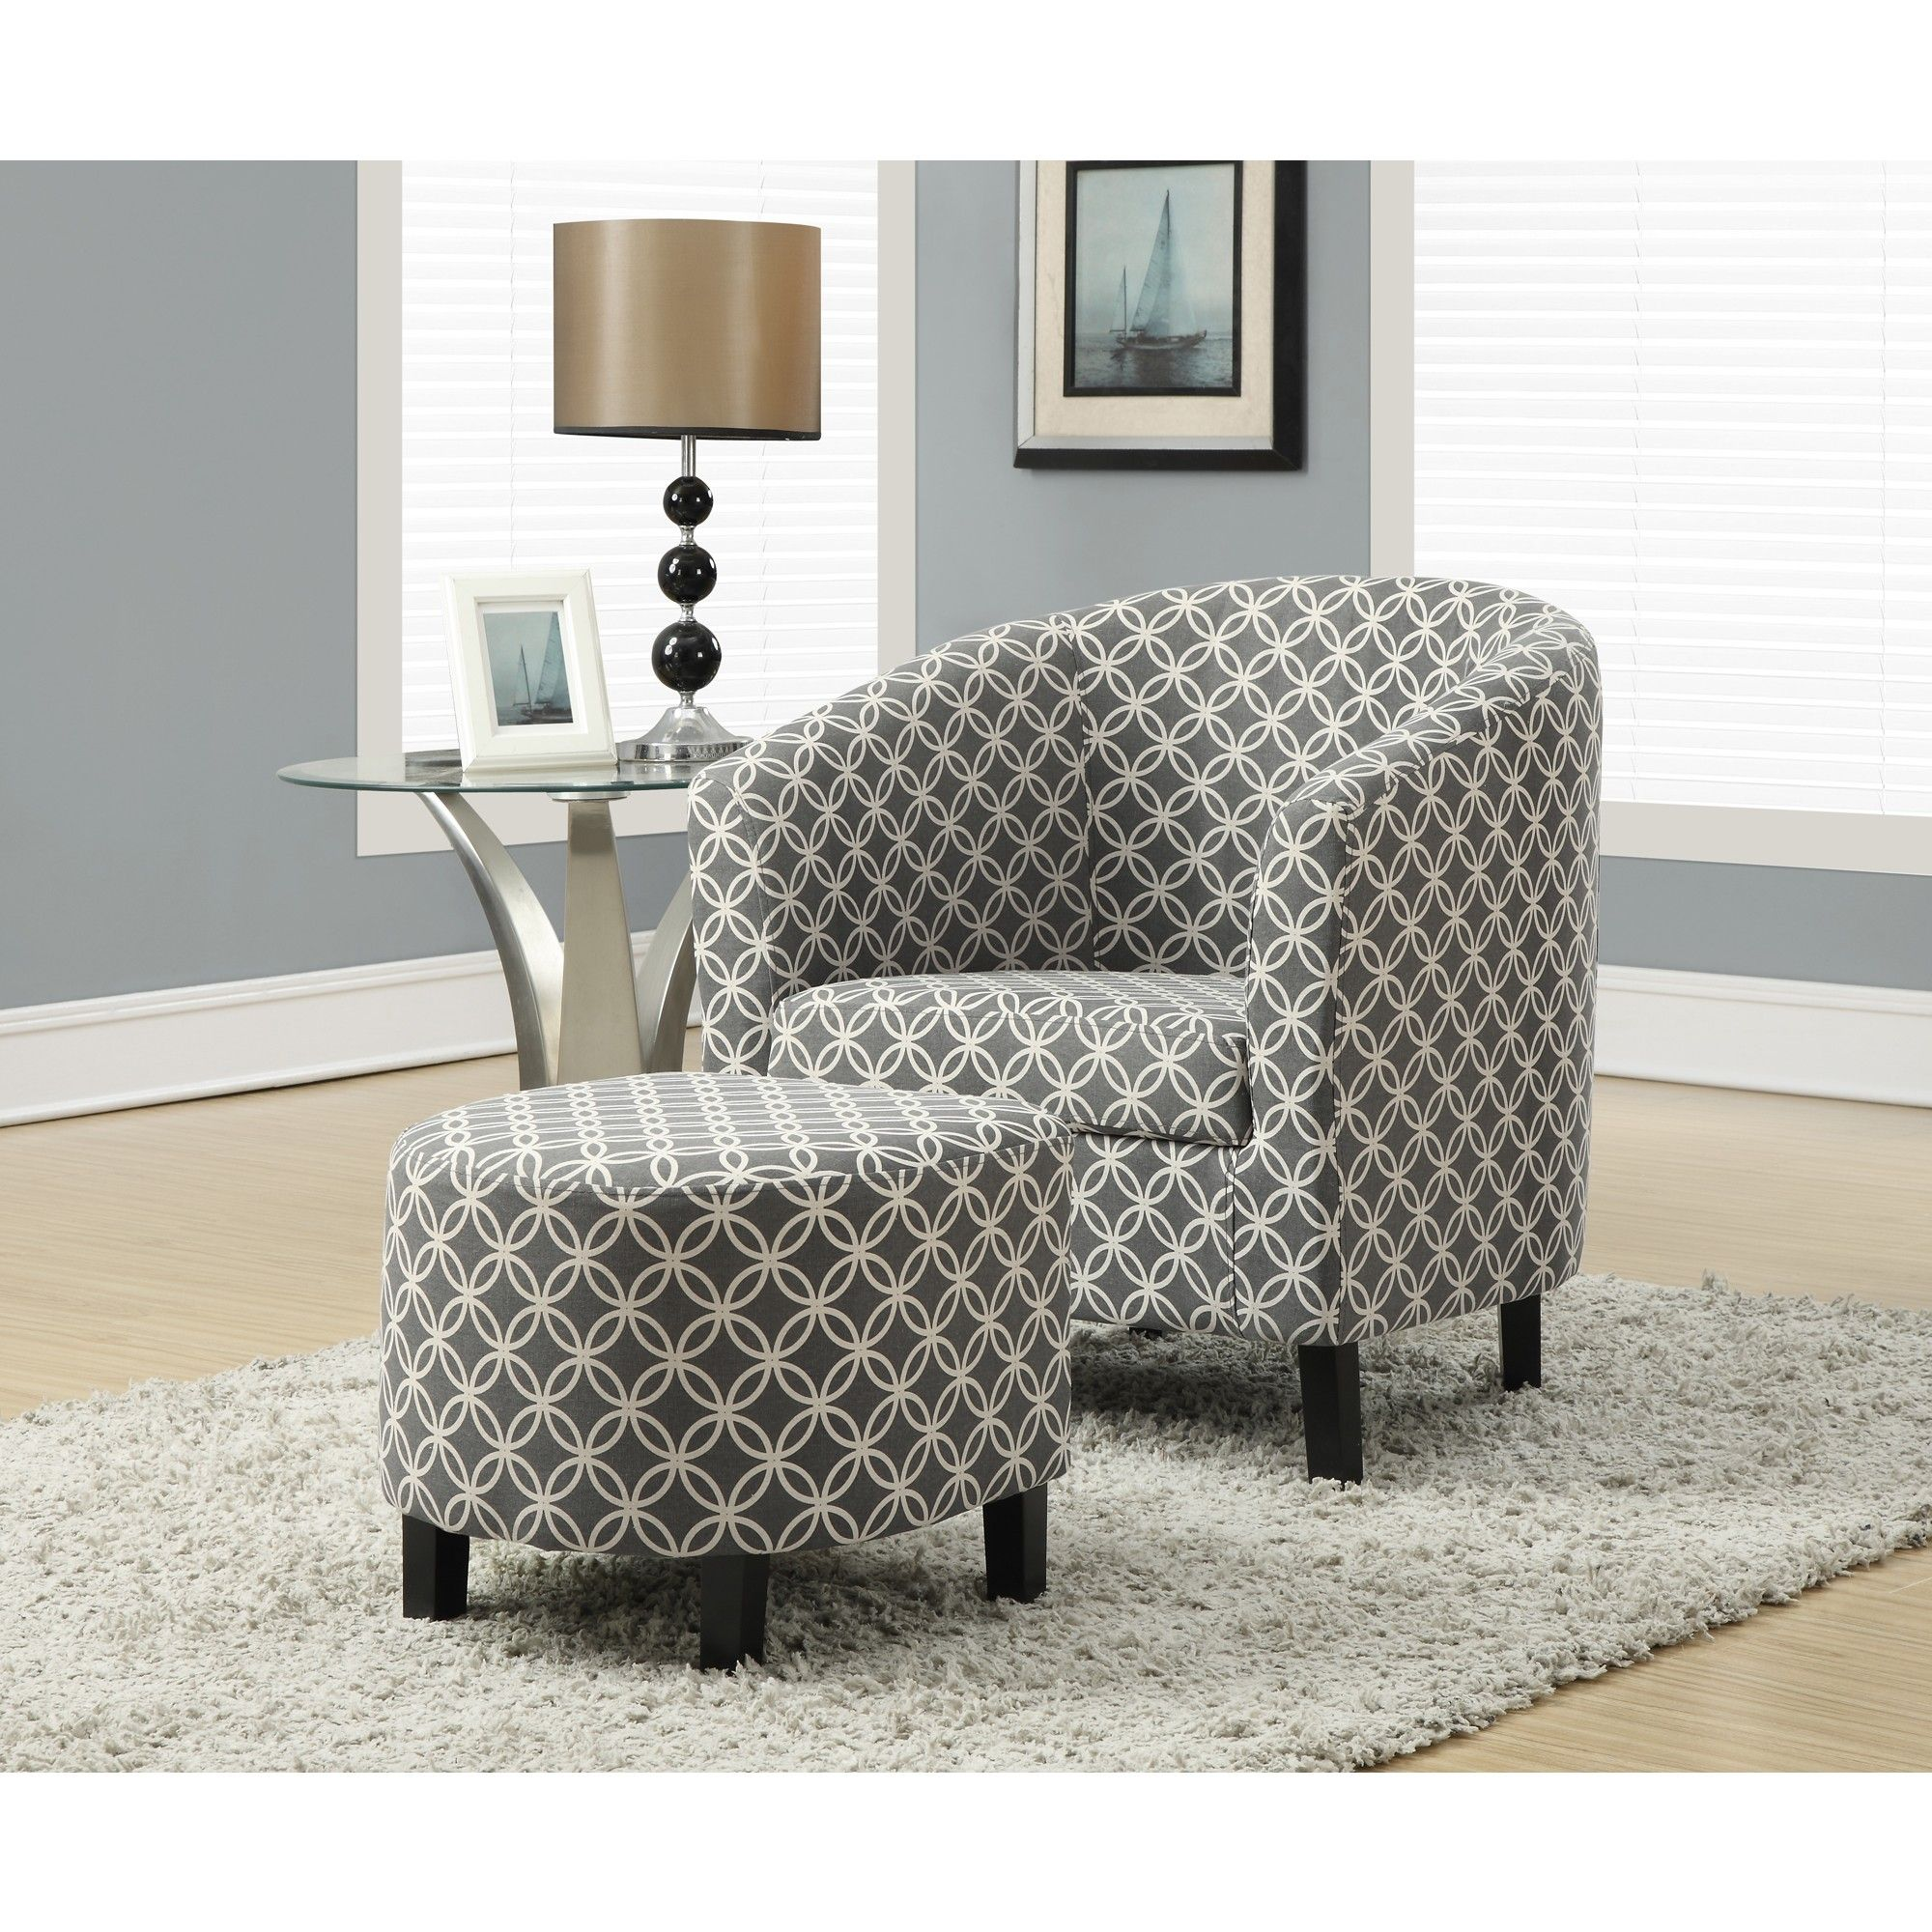 room dorel ottoman abfa multiple with com ip colors ottomans walmart livings for storage living small chairs